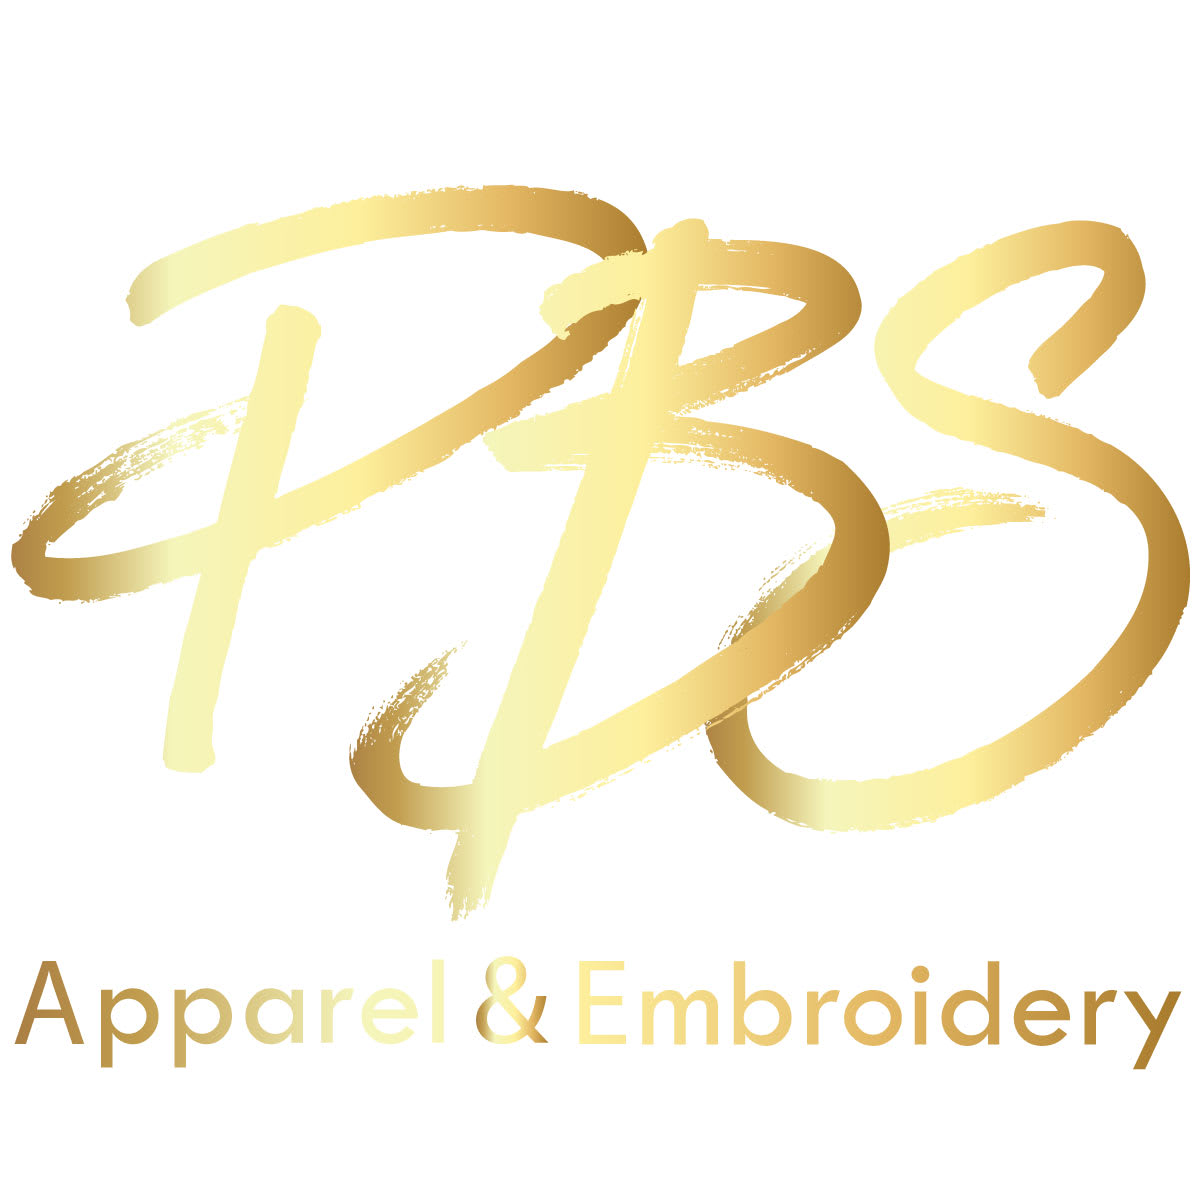 PBS Apparel & Embroidery